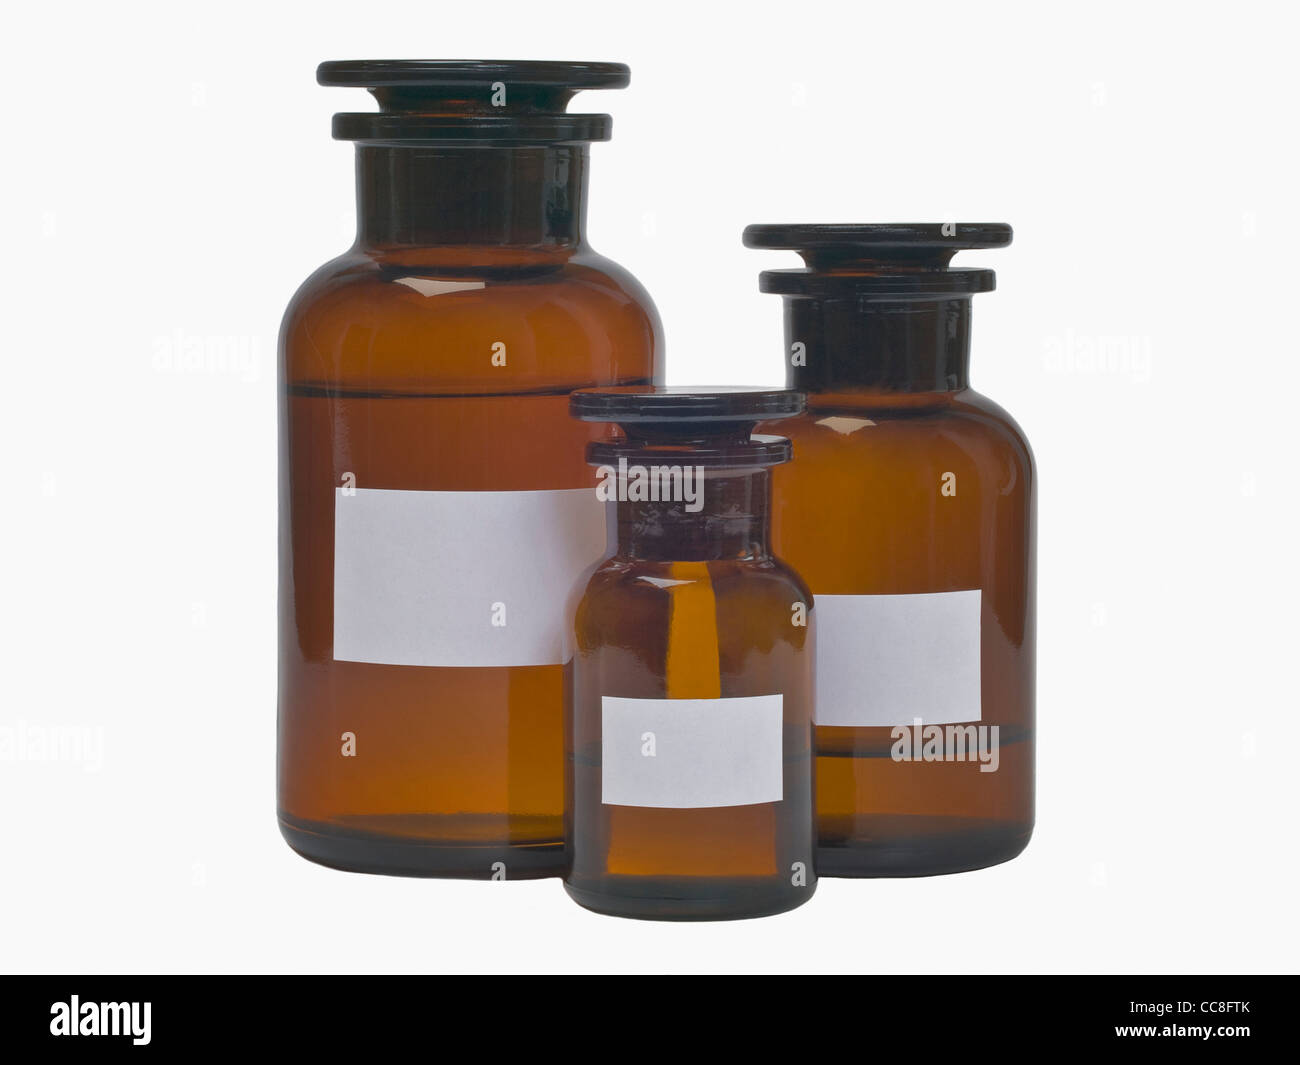 Detail photo of three pharmacists bottles - Stock Image